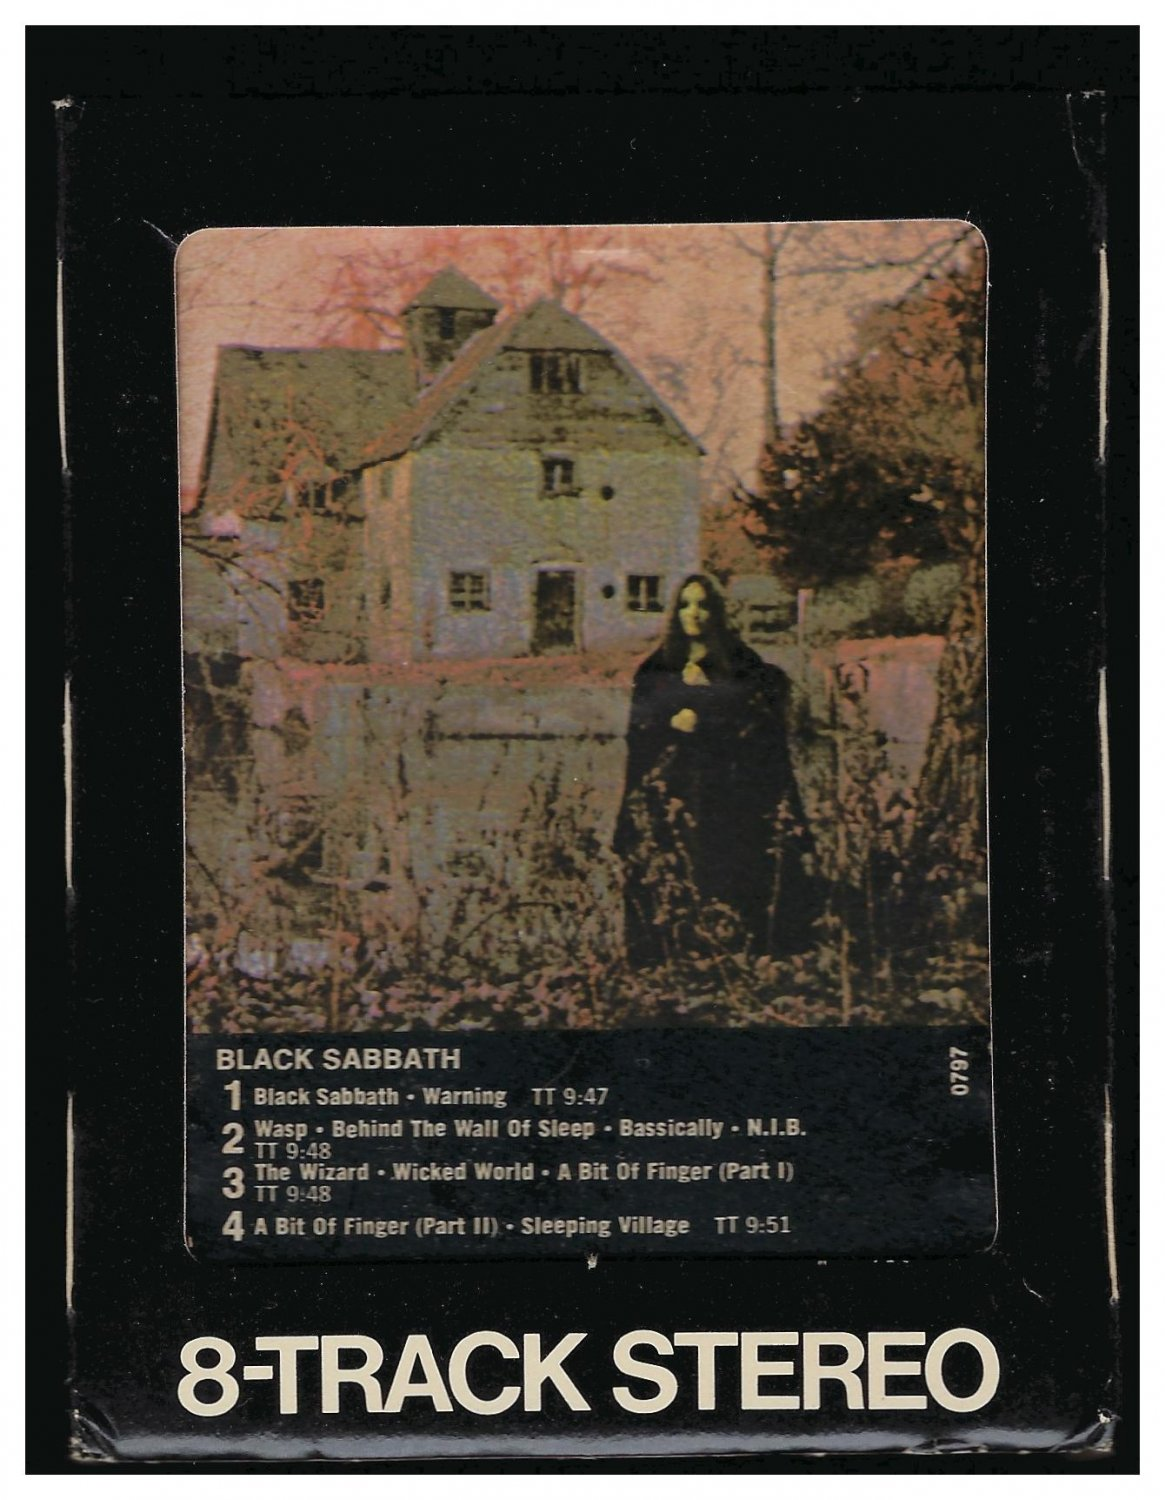 Black Sabbath - Black Sabbath 1970 Debut WB A43 8-TRACK TAPE